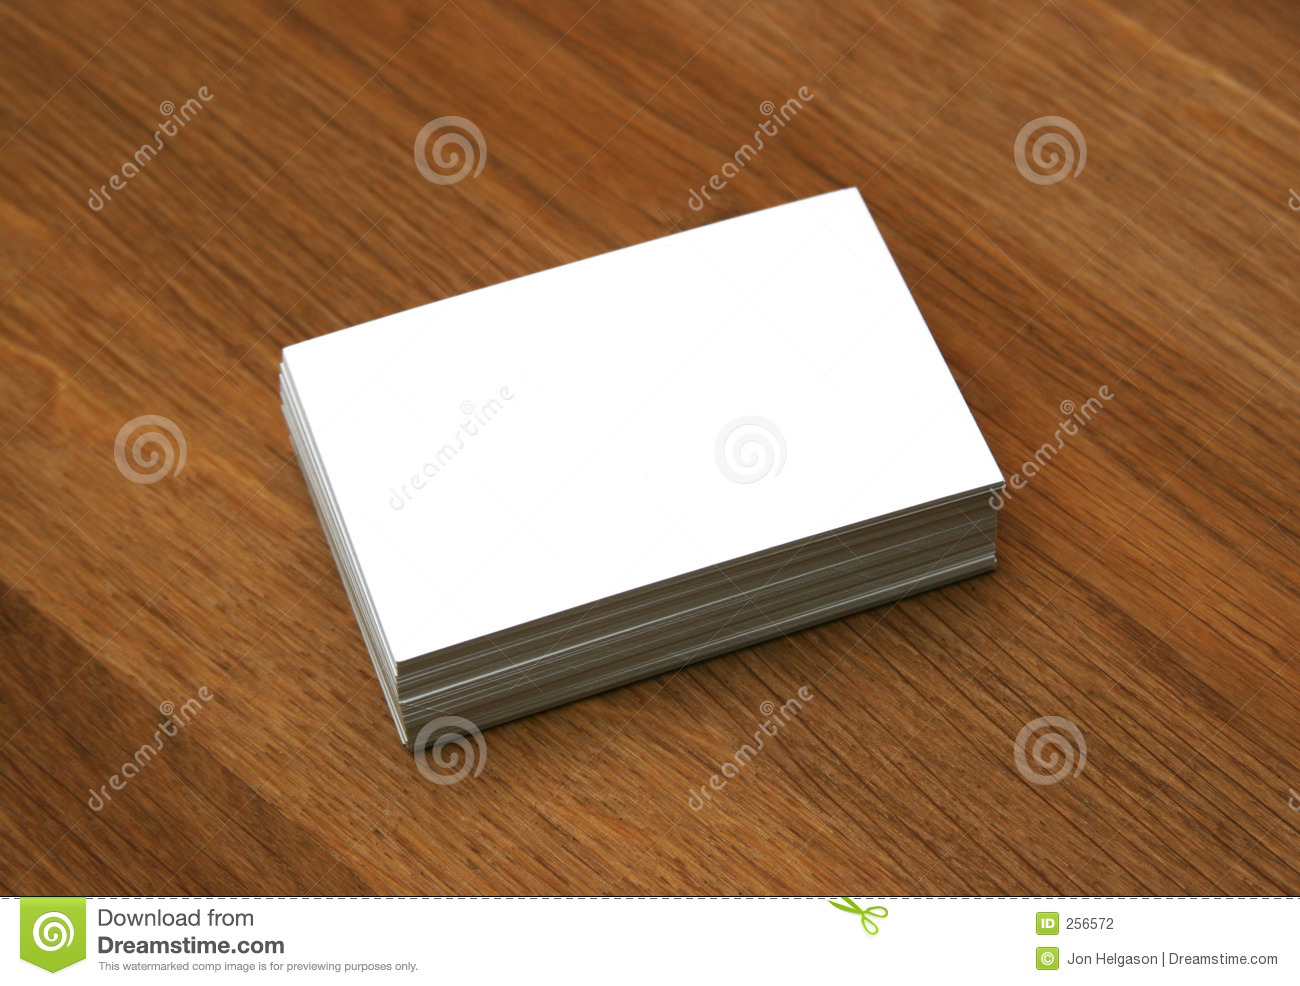 Blank Business Cards Stock Photography - Image: 256572